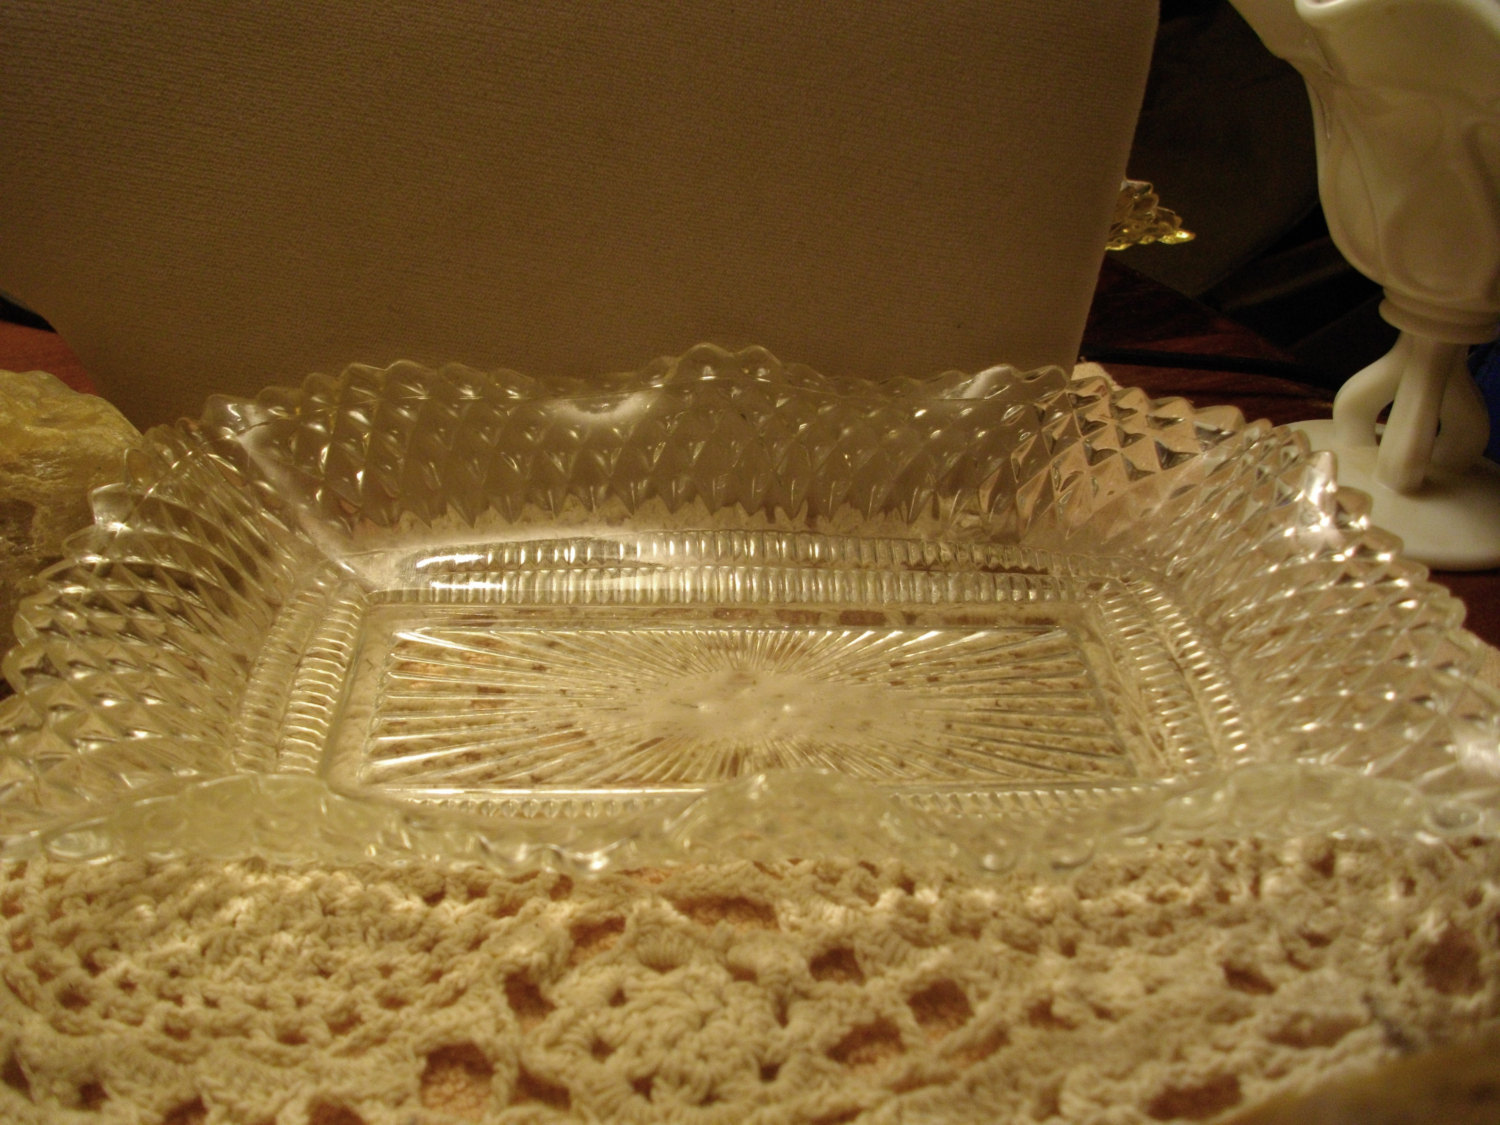 Vtg Large ARTISAN Thick CLEAR GLASS Shell Shaped SCALLOPED Candy Serving DISH